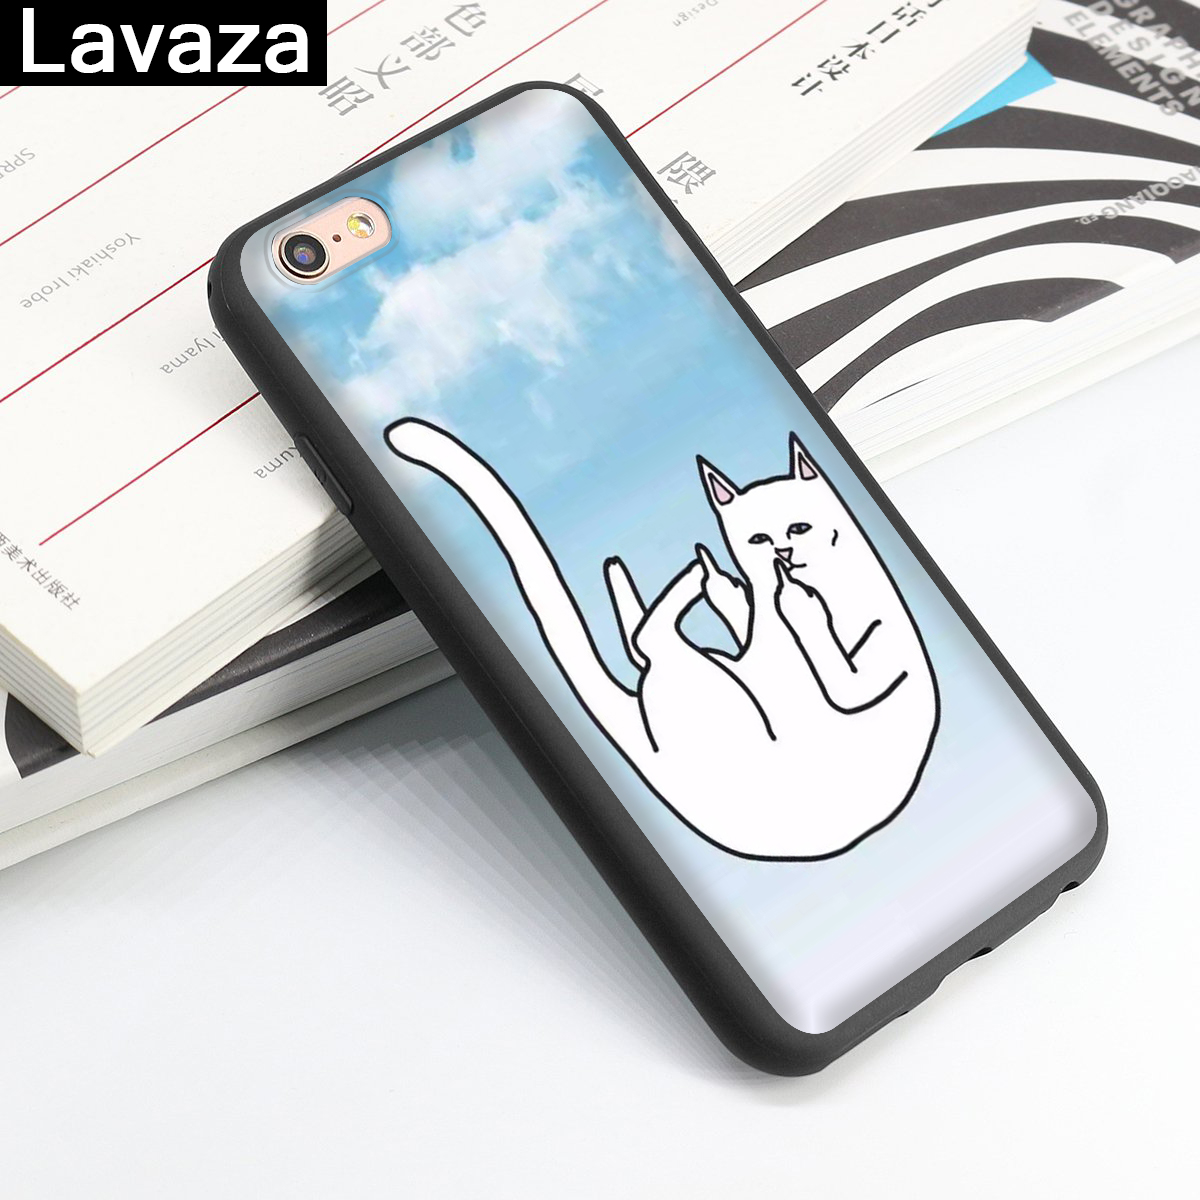 Lavaza Fashion Cute Funny Cat Printed Silicone Case for iPhone 5 5S 6 6S 7 8 11 Pro Plus X XR XS Max in Fitted Cases from Cellphones Telecommunications